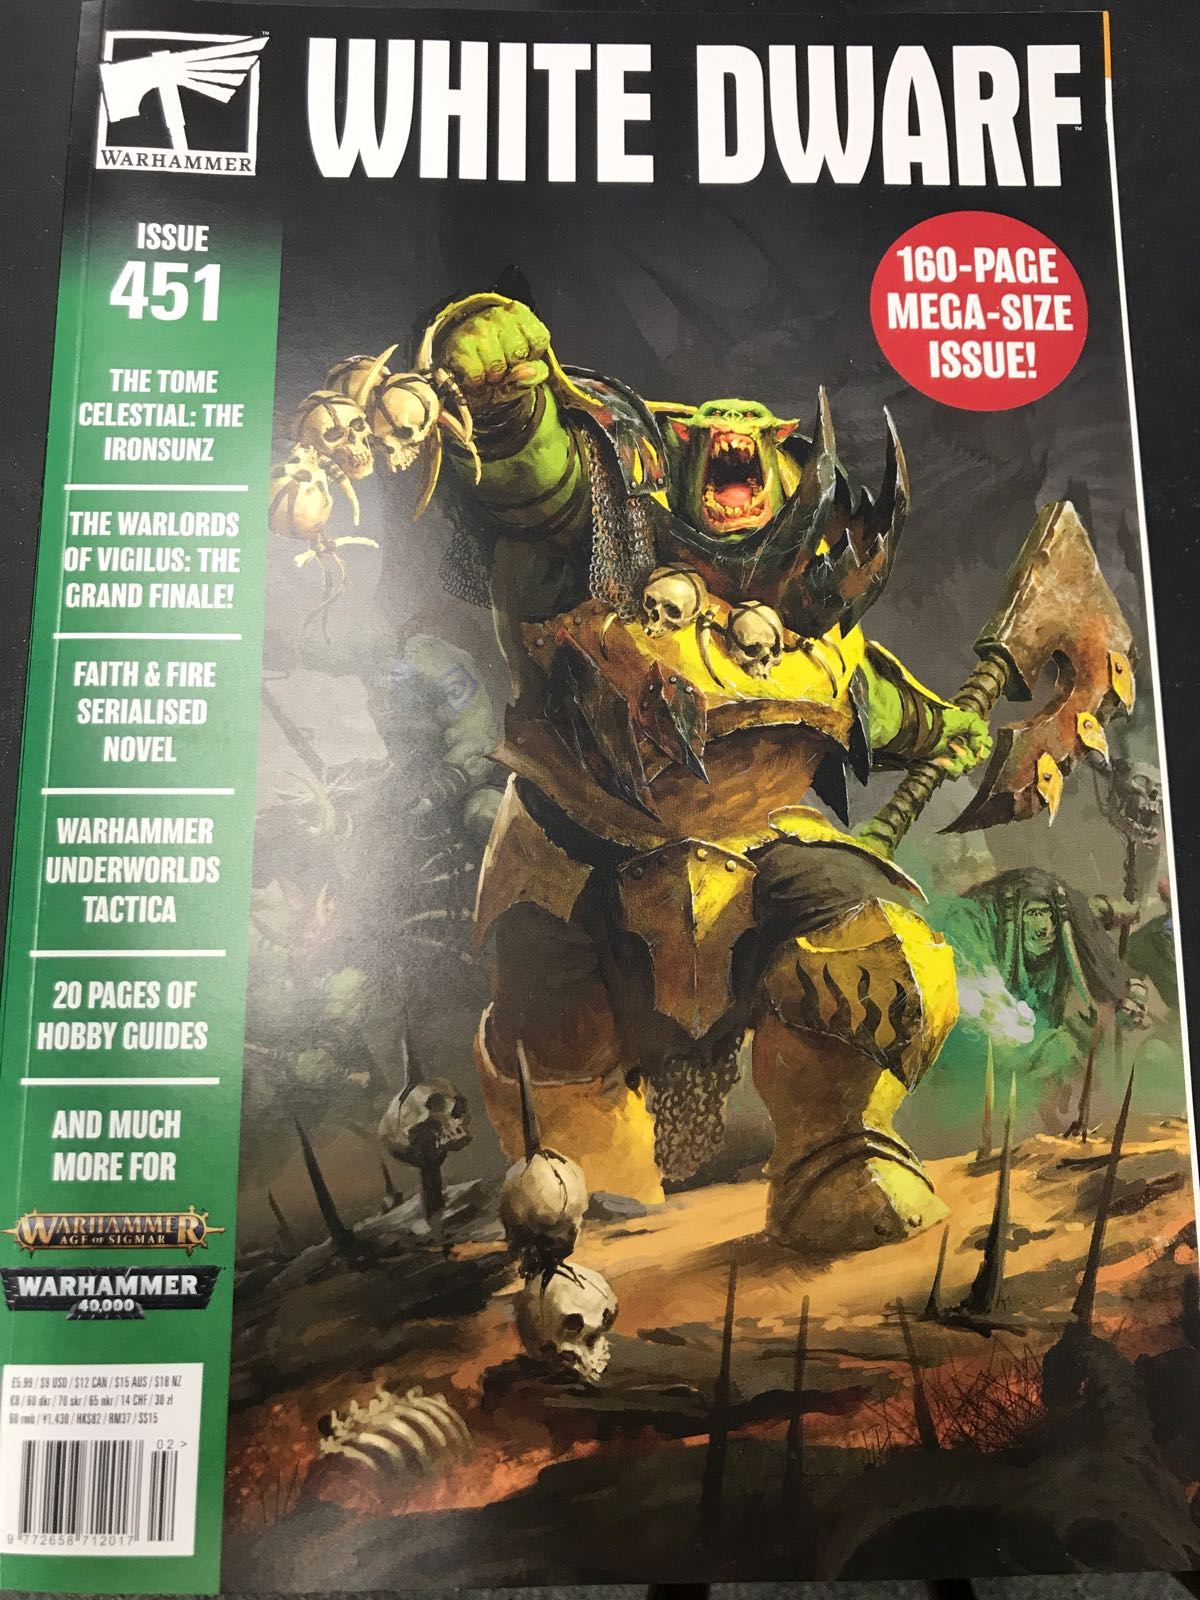 WHITE DWARF: ISSUE 451